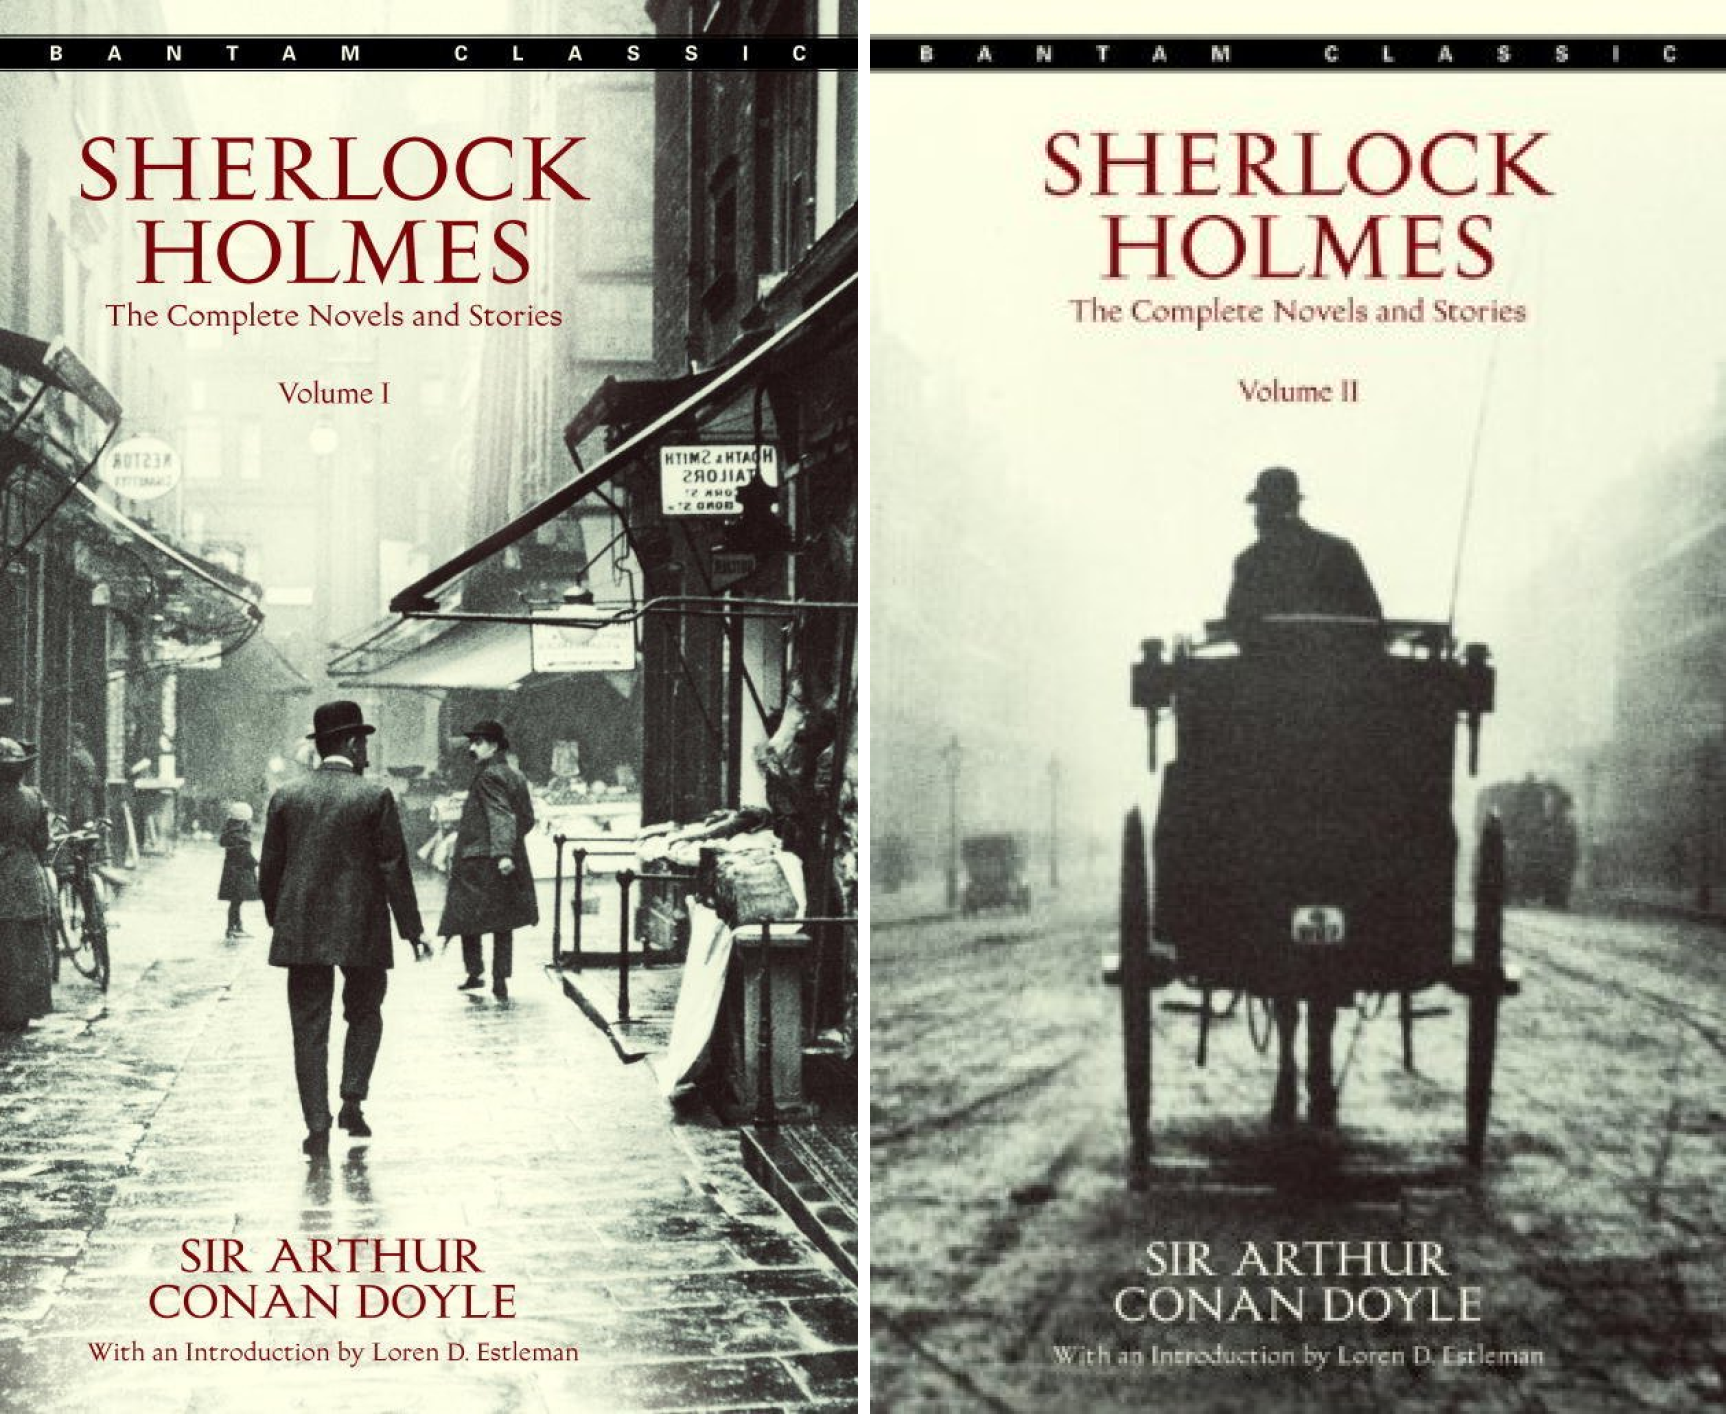 Sherlock Holmes The Complete Novels and Stories (2 Book Series)